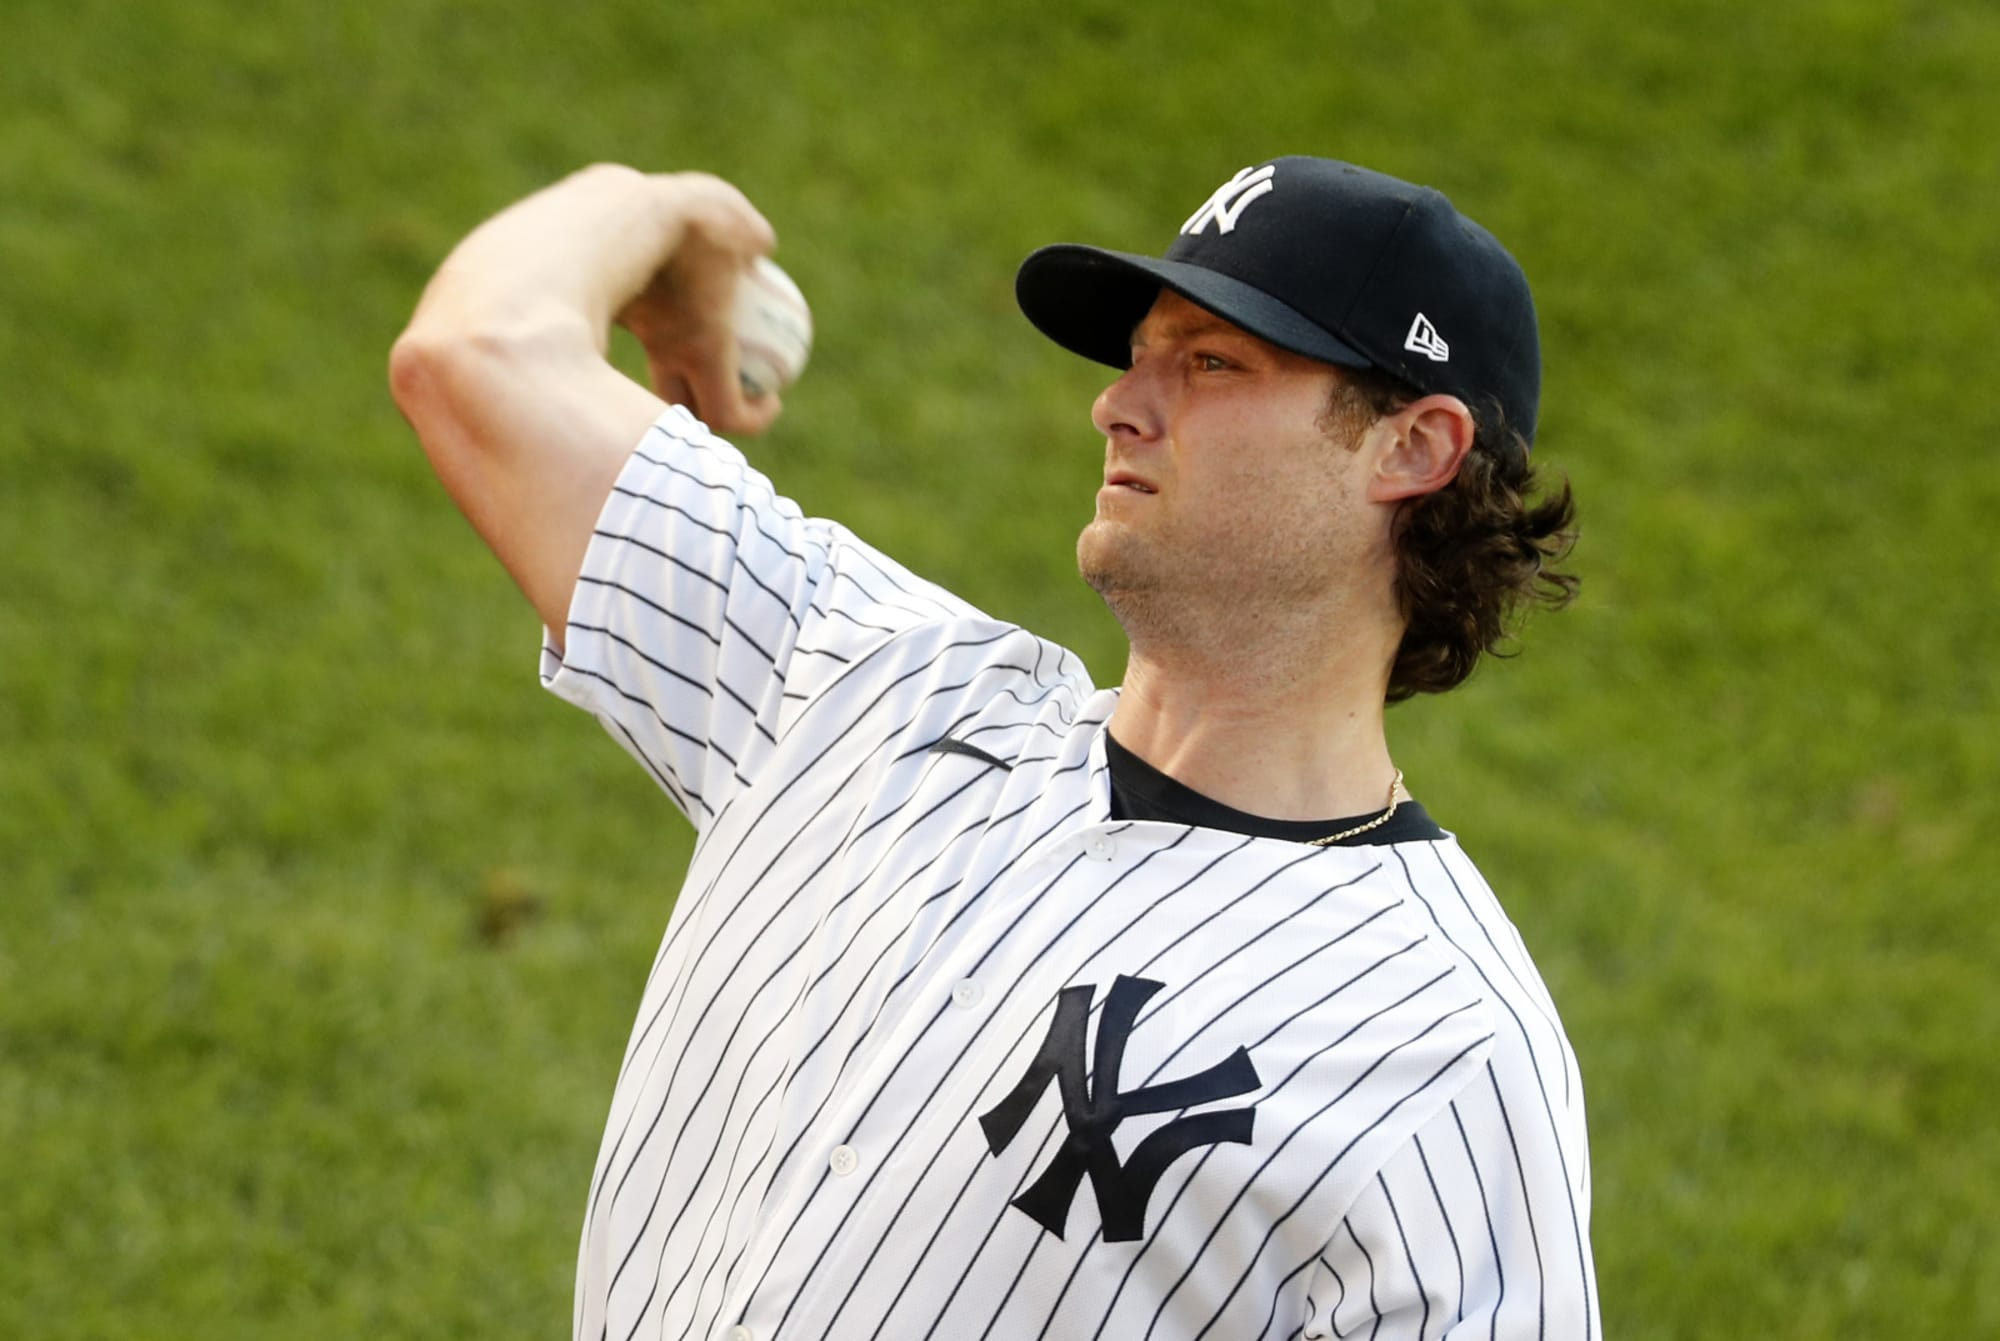 Yankees: Gerrit Cole's texts and Corey Kluber involved in latest SI bombshell